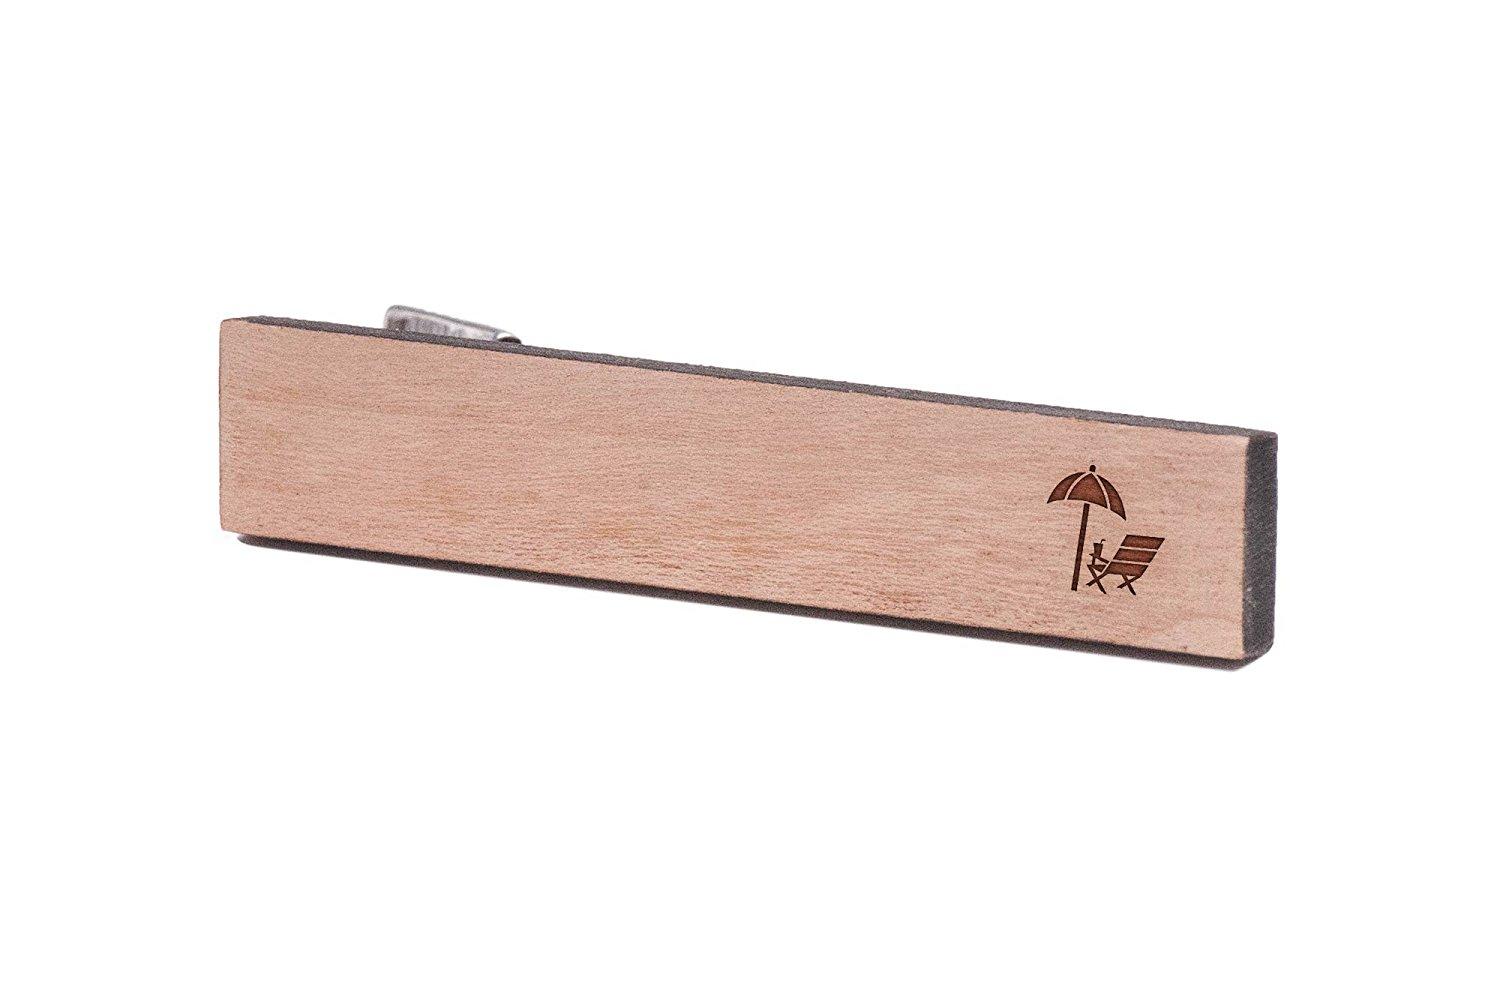 Cherry Wood Tie Bar Engraved in The USA Wooden Accessories Company Wooden Tie Clips with Laser Engraved Sucker Design